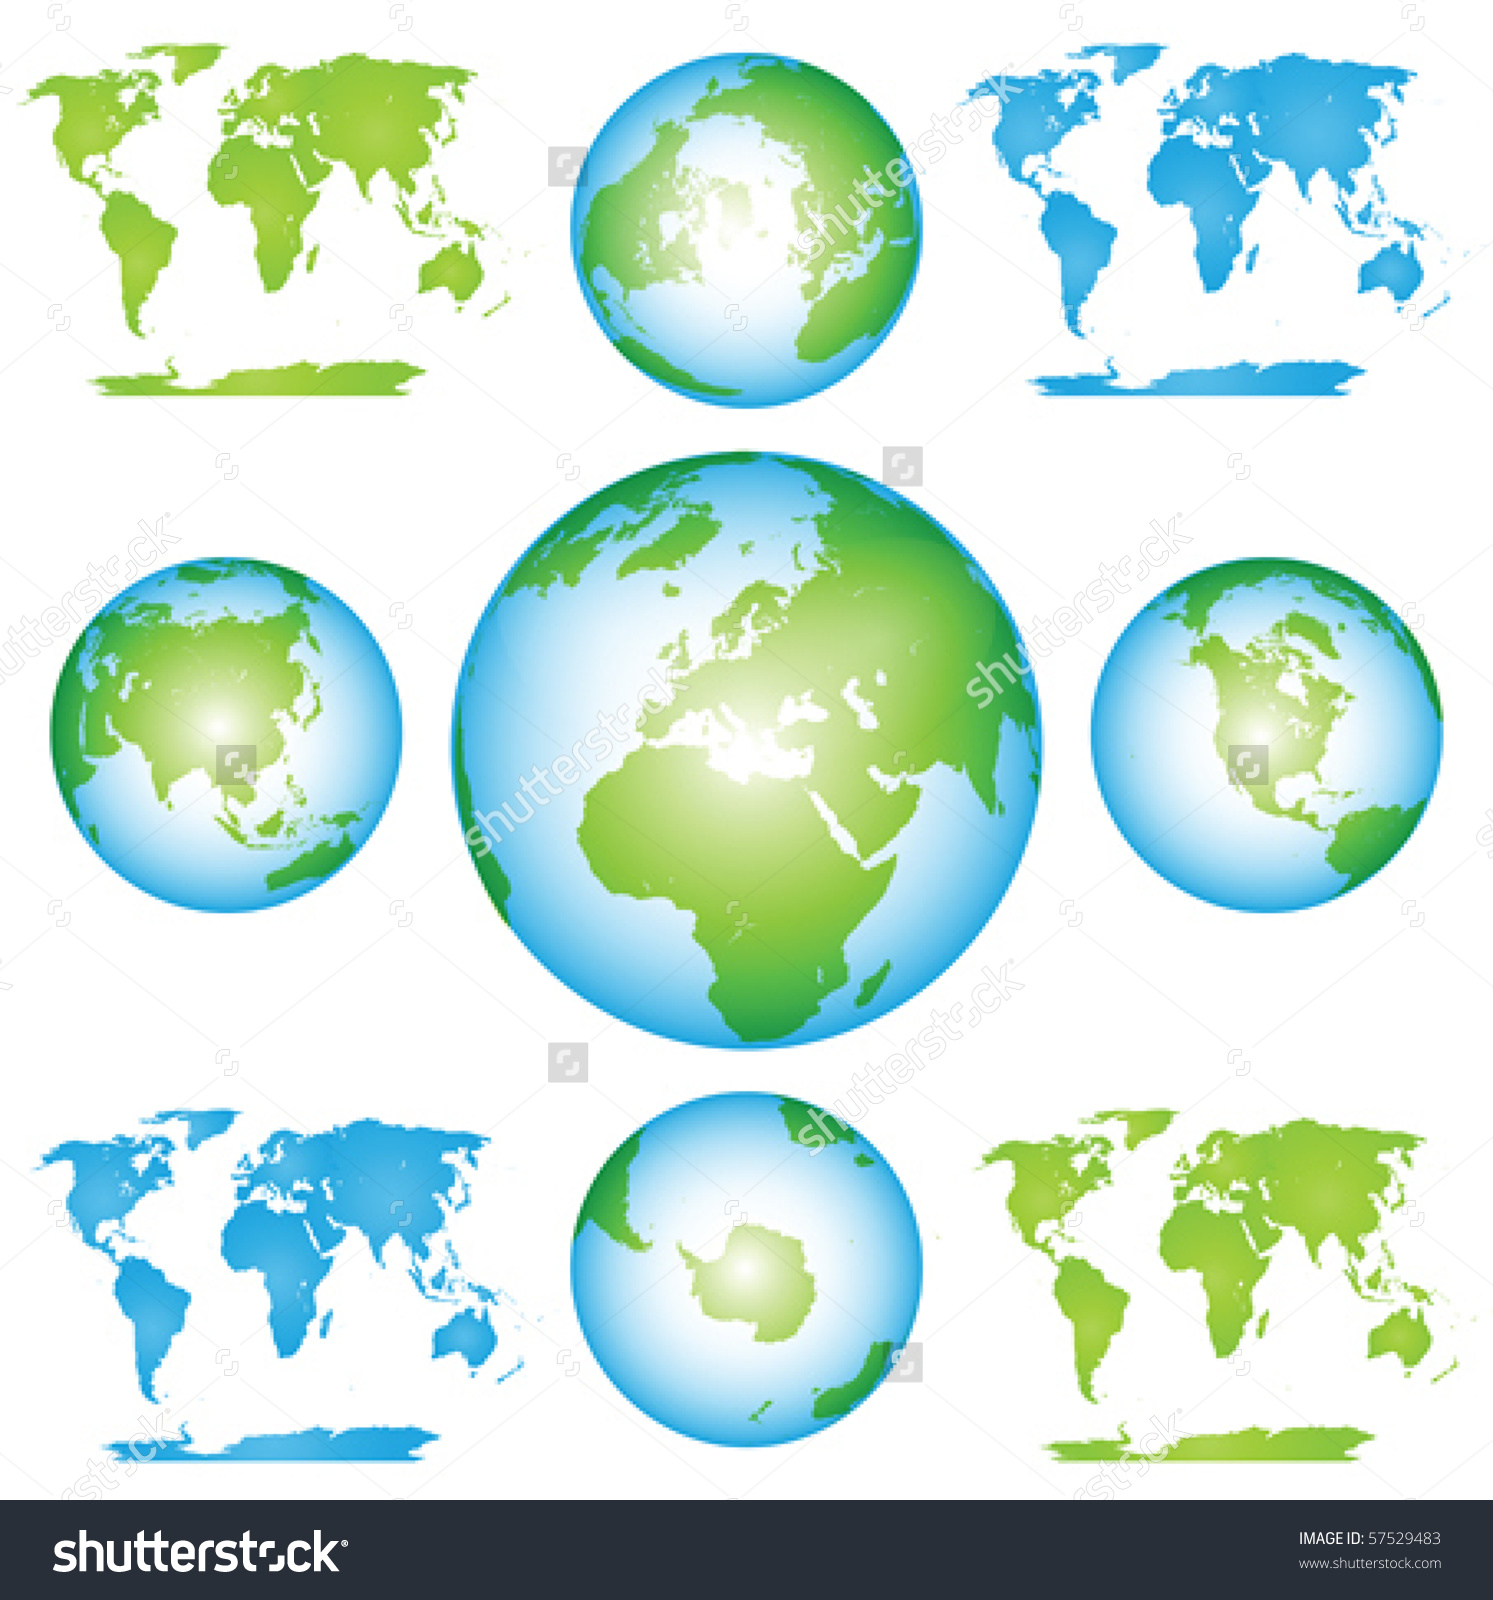 Vector Globes Maps Collection Clip Art Stock Vector 57529483.